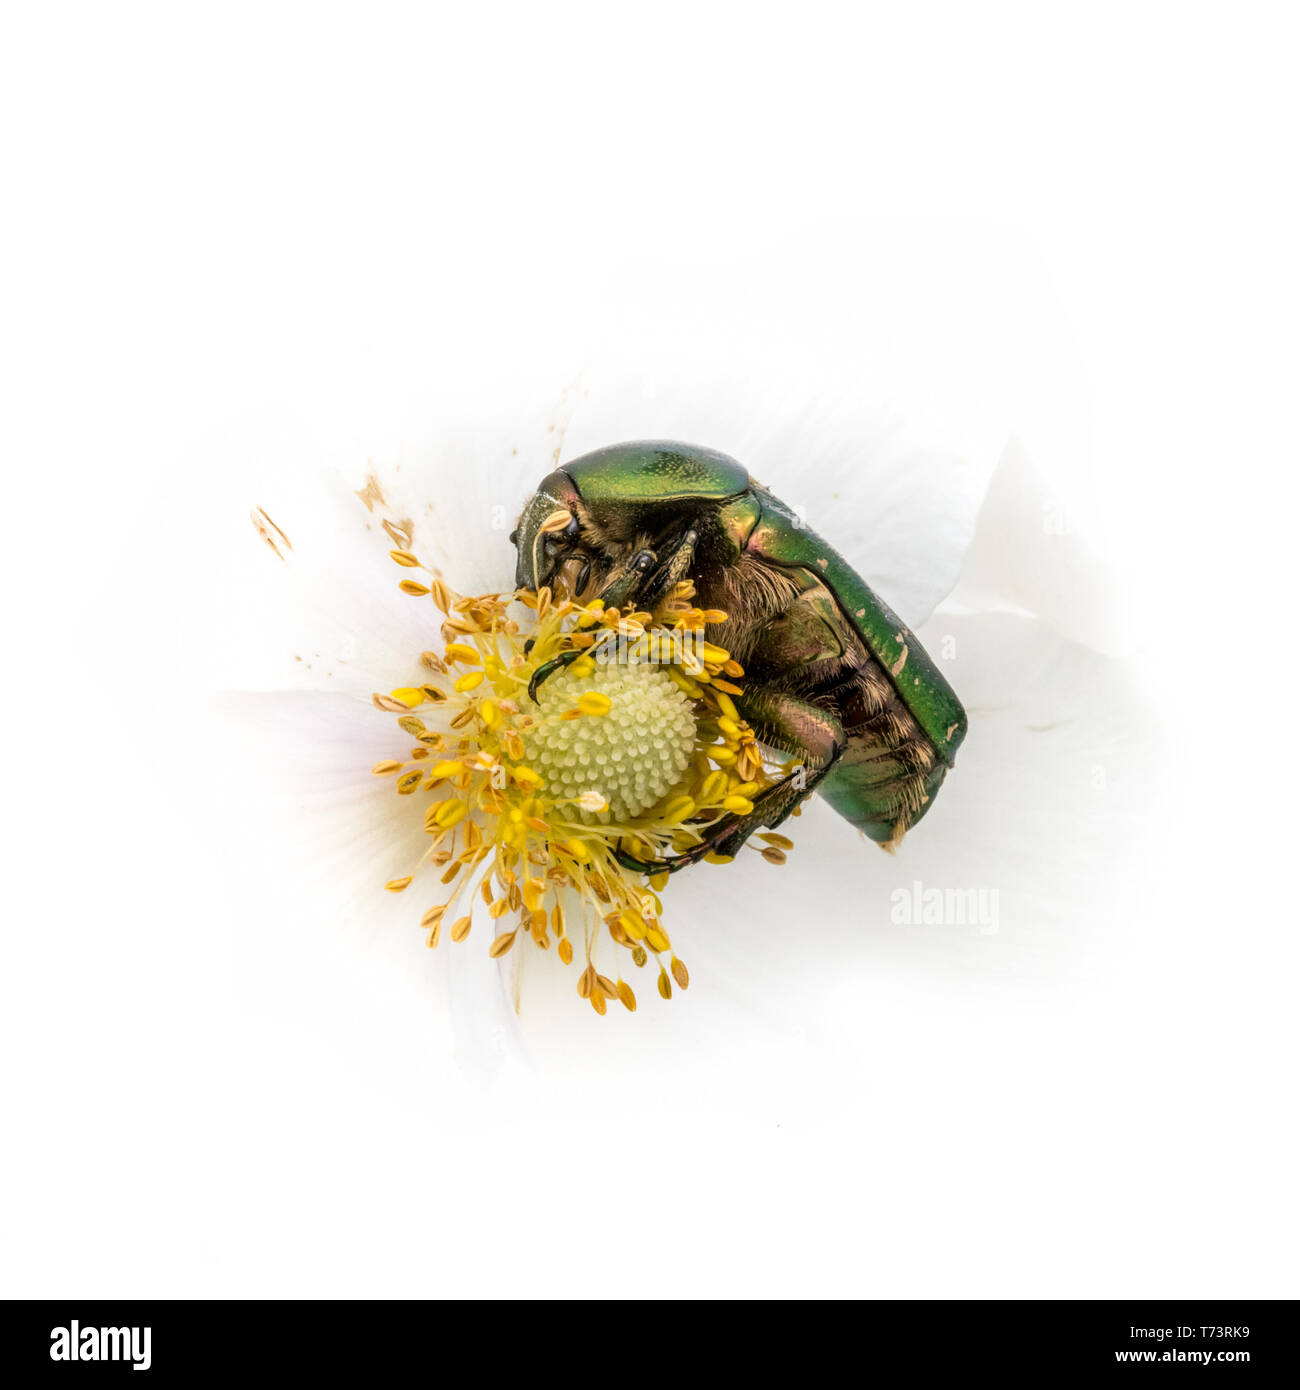 Gold shiny rose beetle on white blossom while eating in front of white background - Stock Image